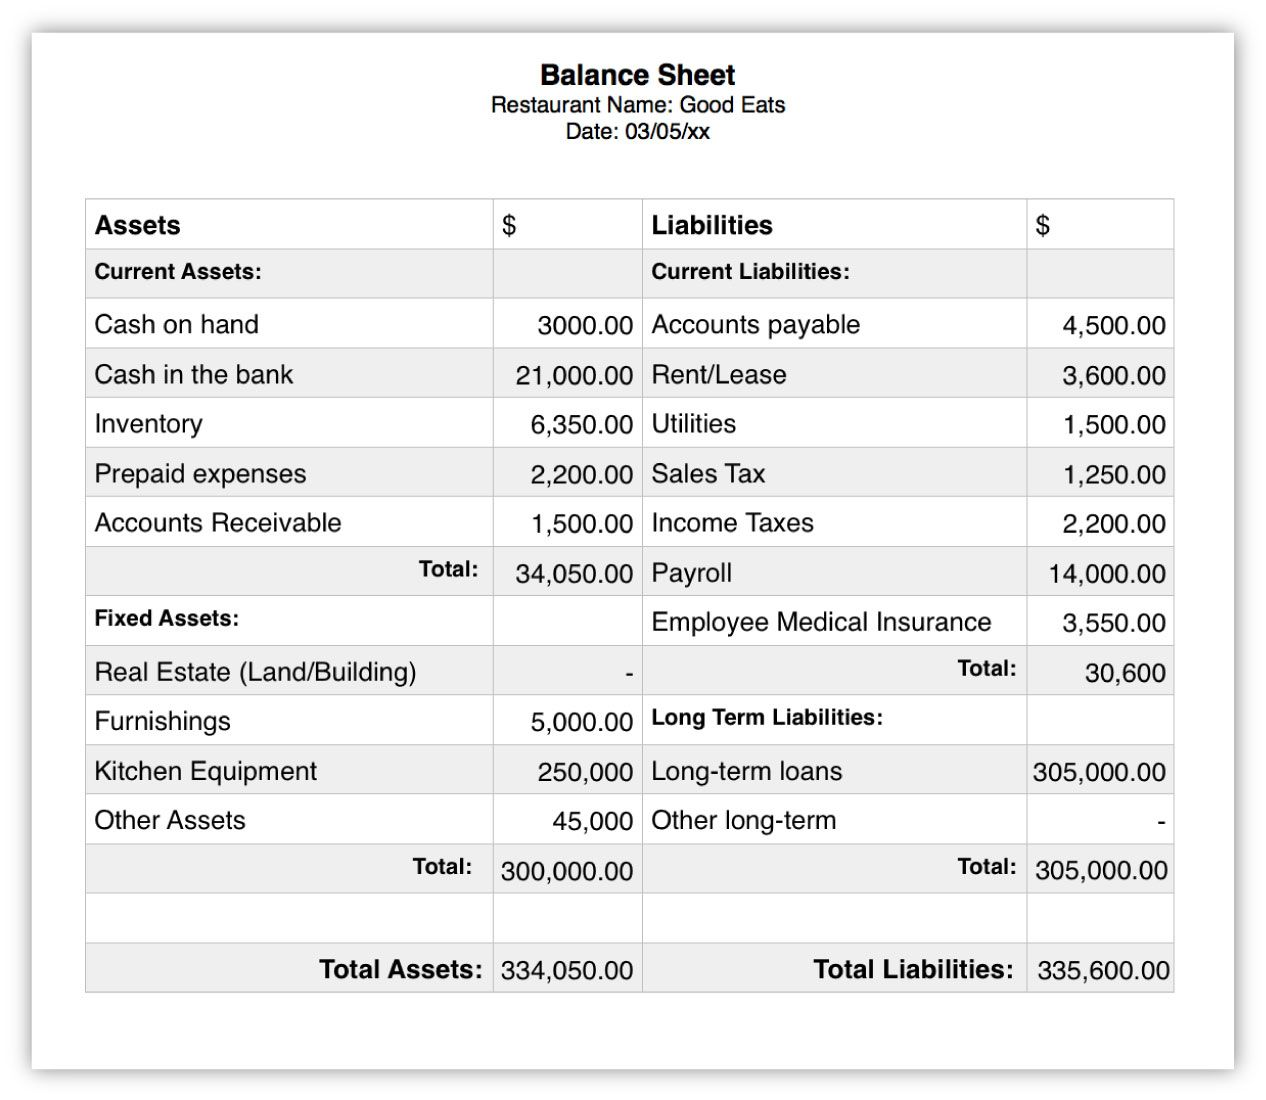 Restaurant Balance Sheet Sample